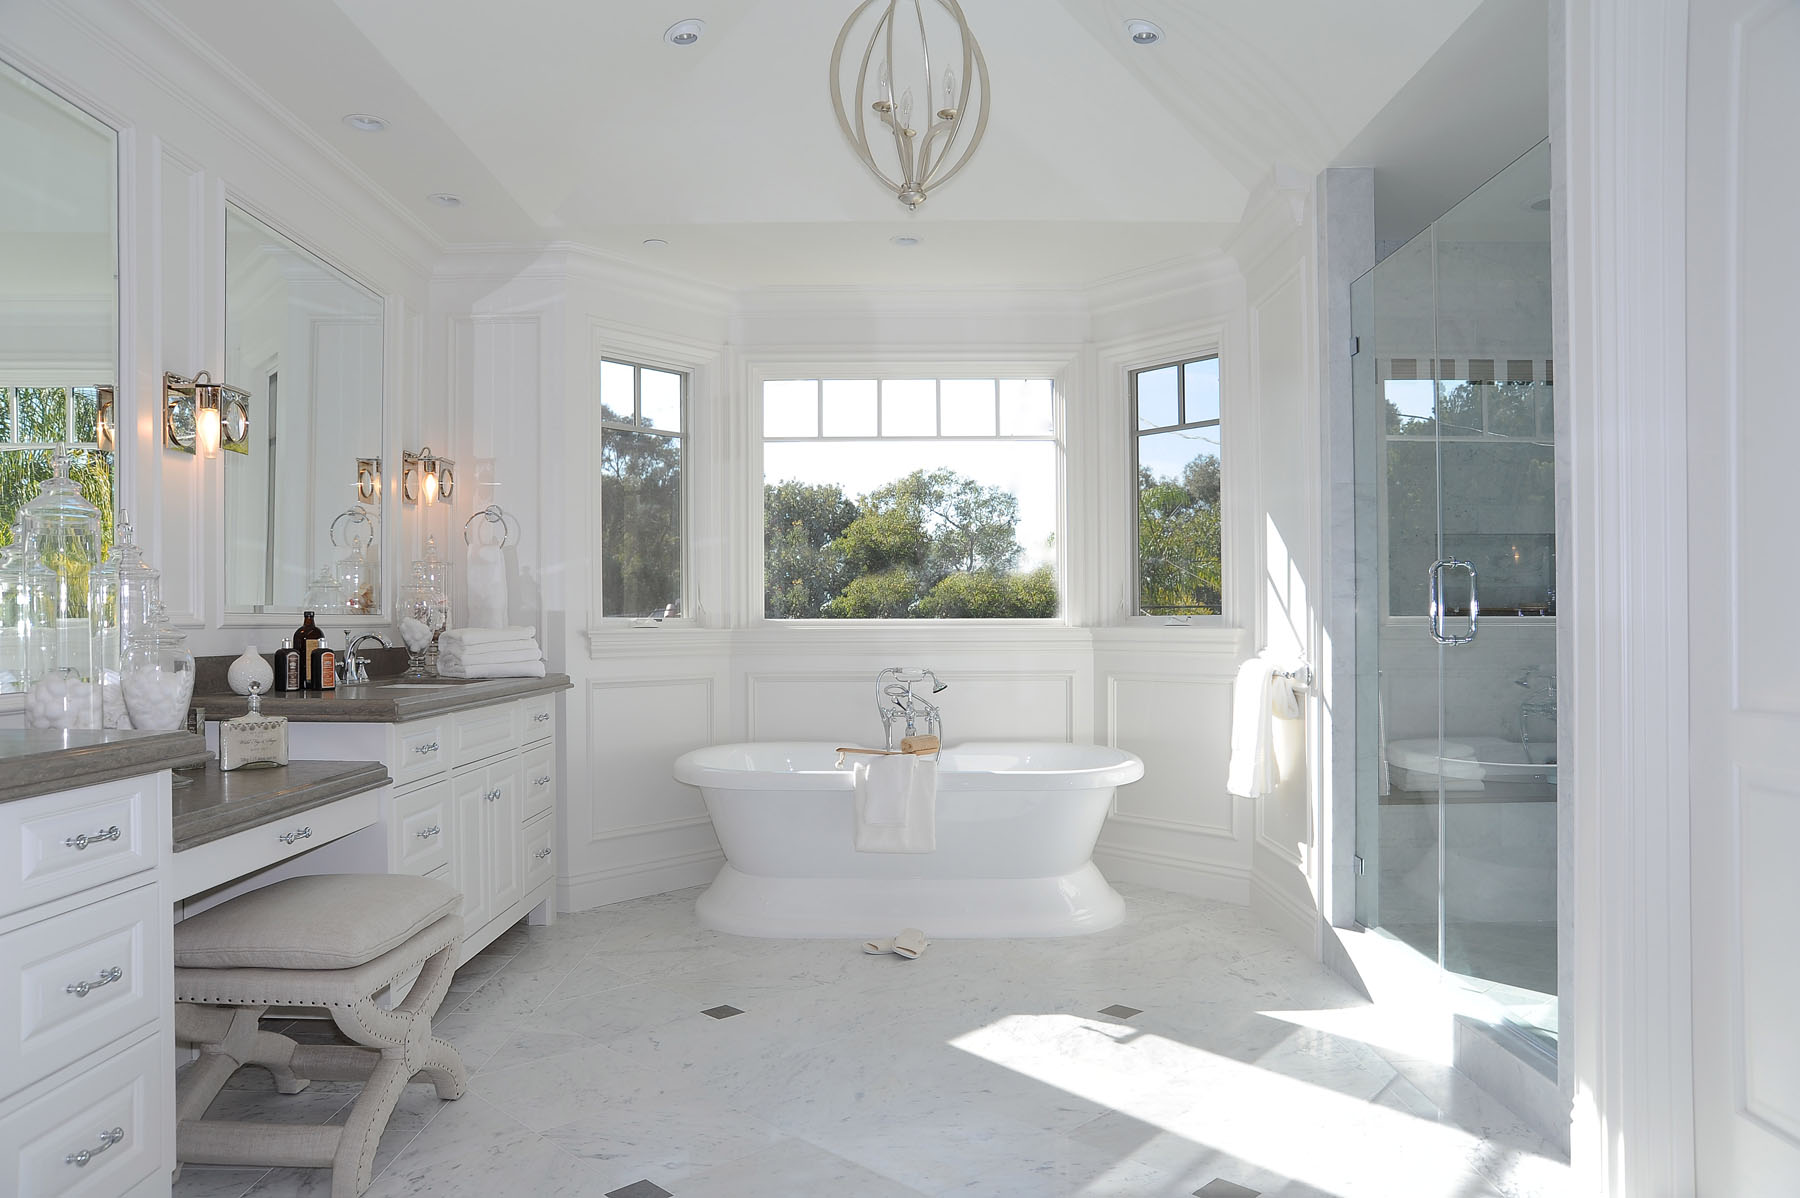 Cape cod in california dtm interiors by aimee miller - Cool cape cod bathroom designs with interior ...